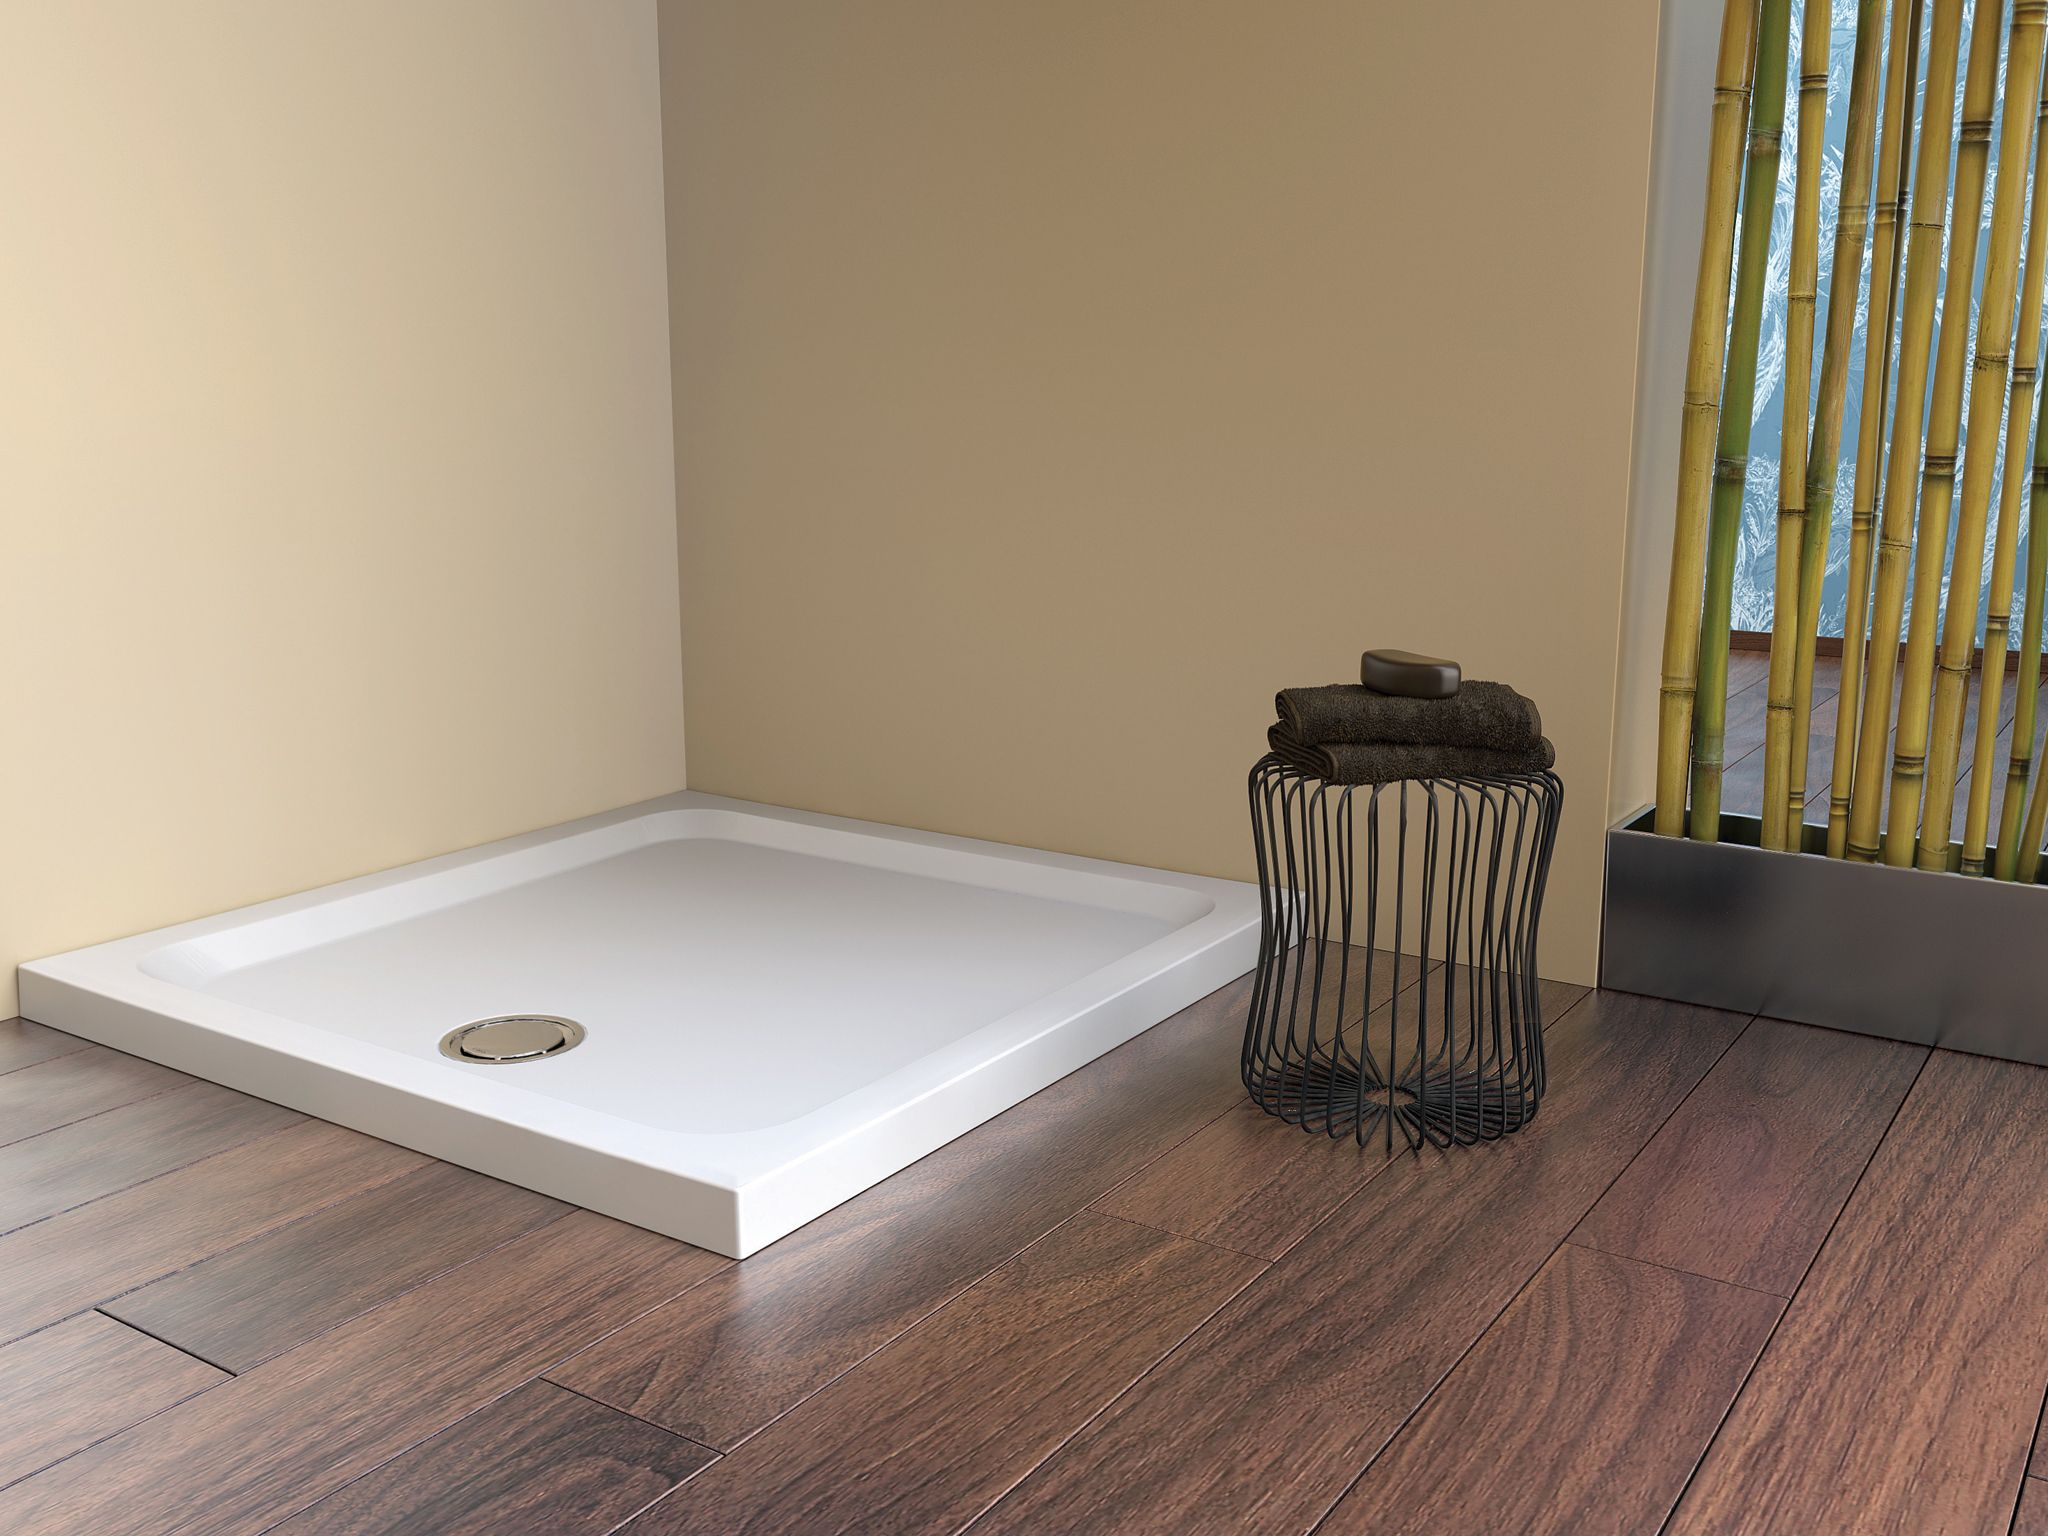 Fineline 60 Shower Trays low profile, rigid, hard-wearing slip ...